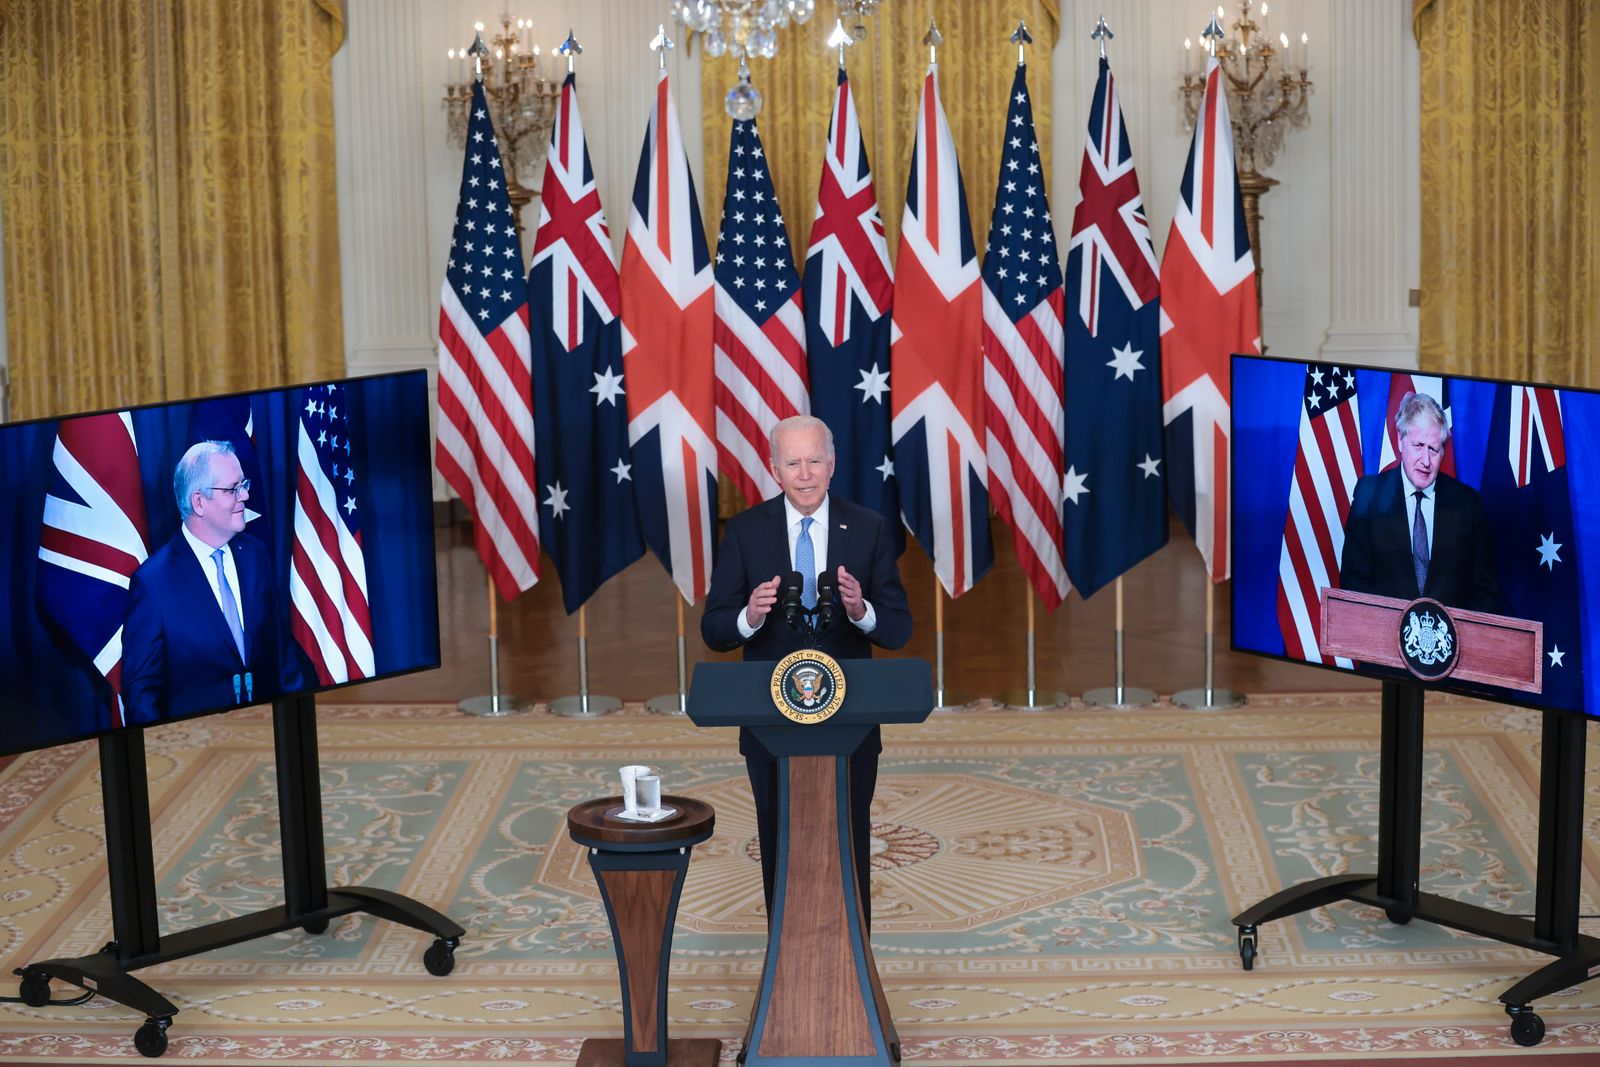 US President Joe Biden delivers remarks about a national security initiative with Australia and Britain